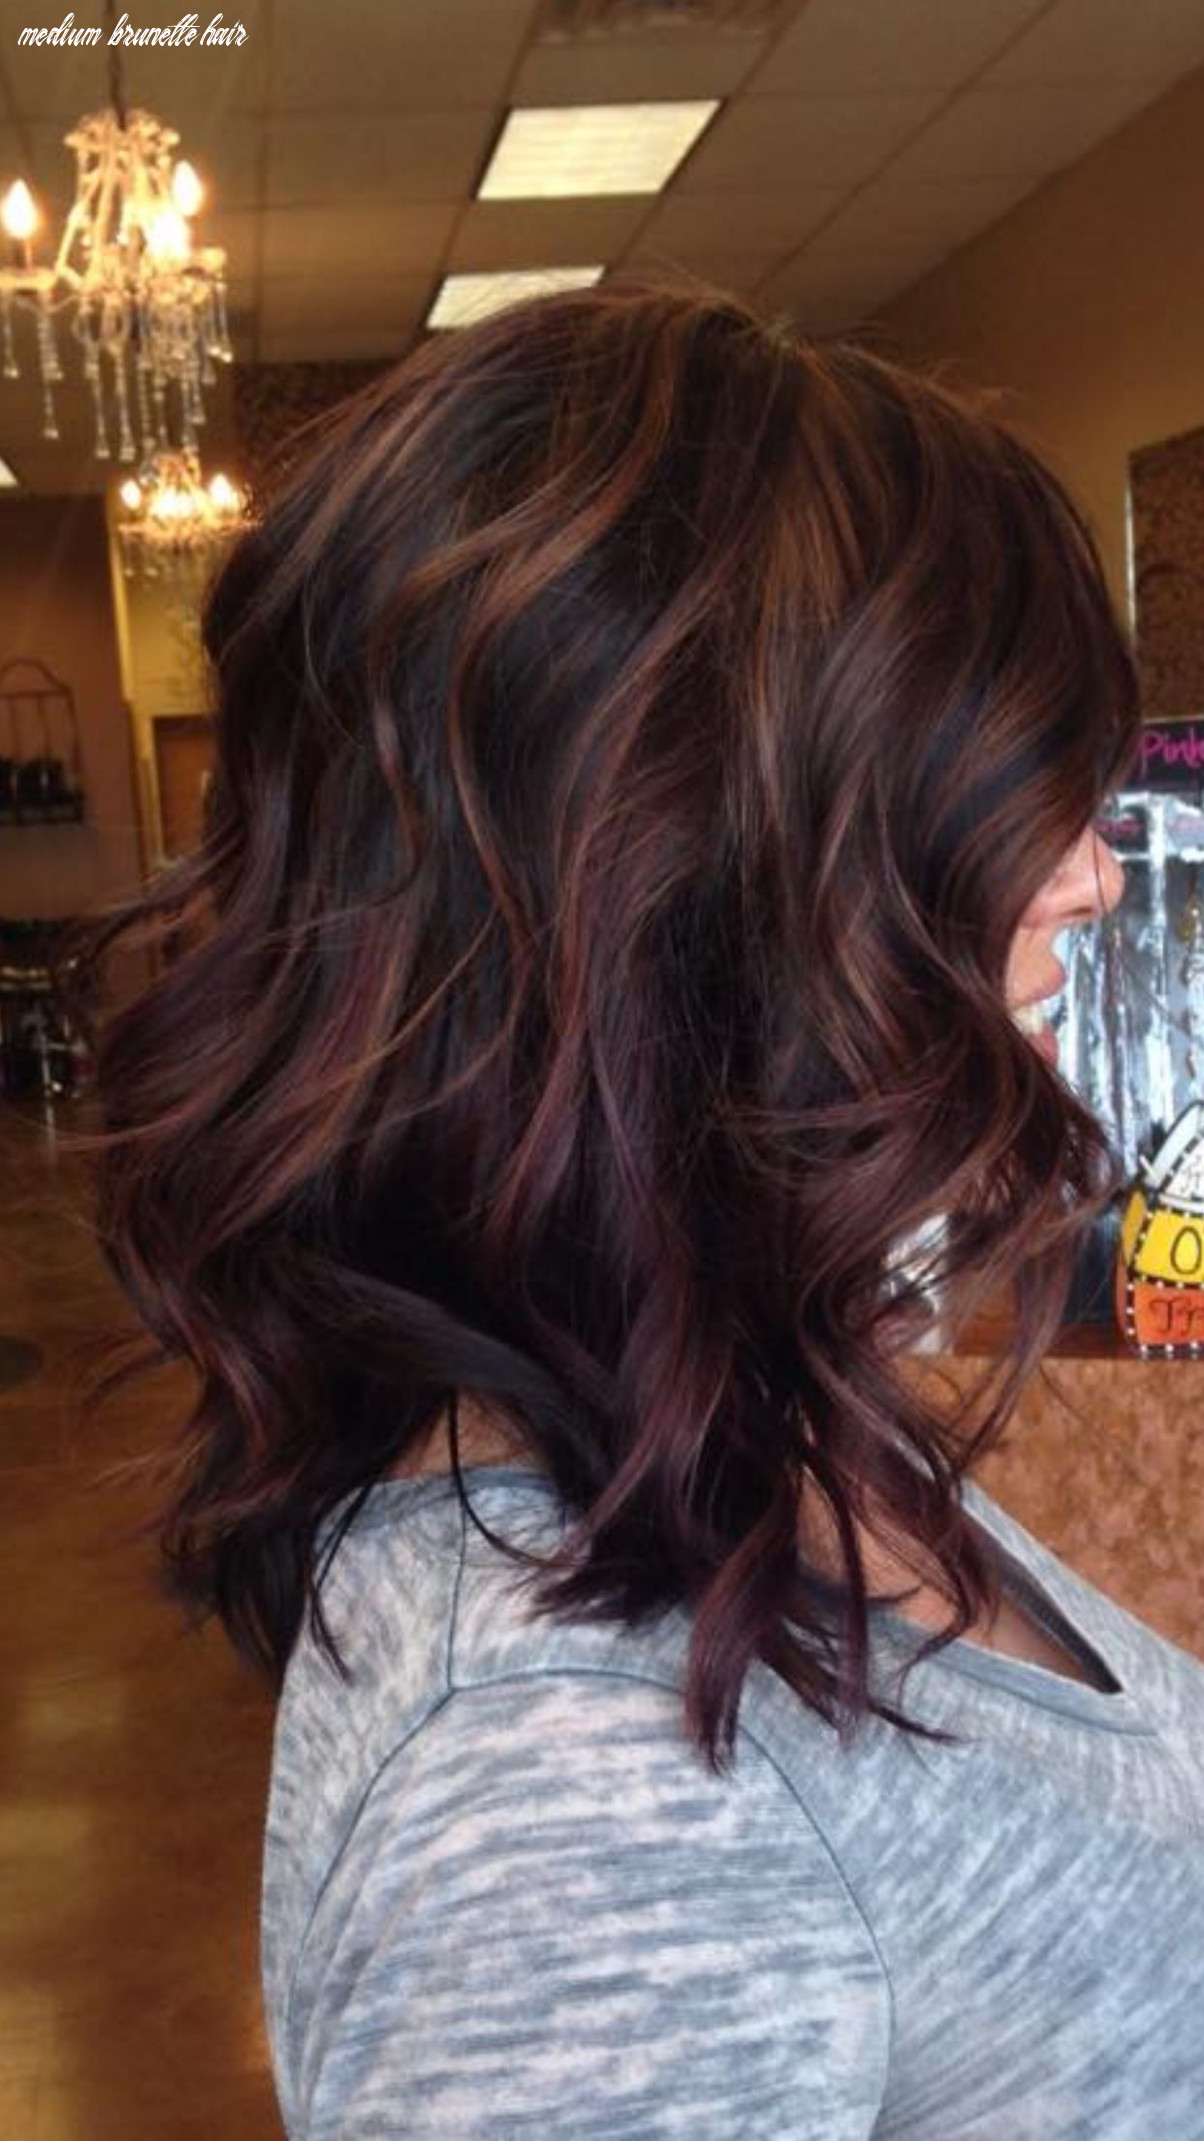 Pin by shelby alverson on hair | hair styles, brunette hair color